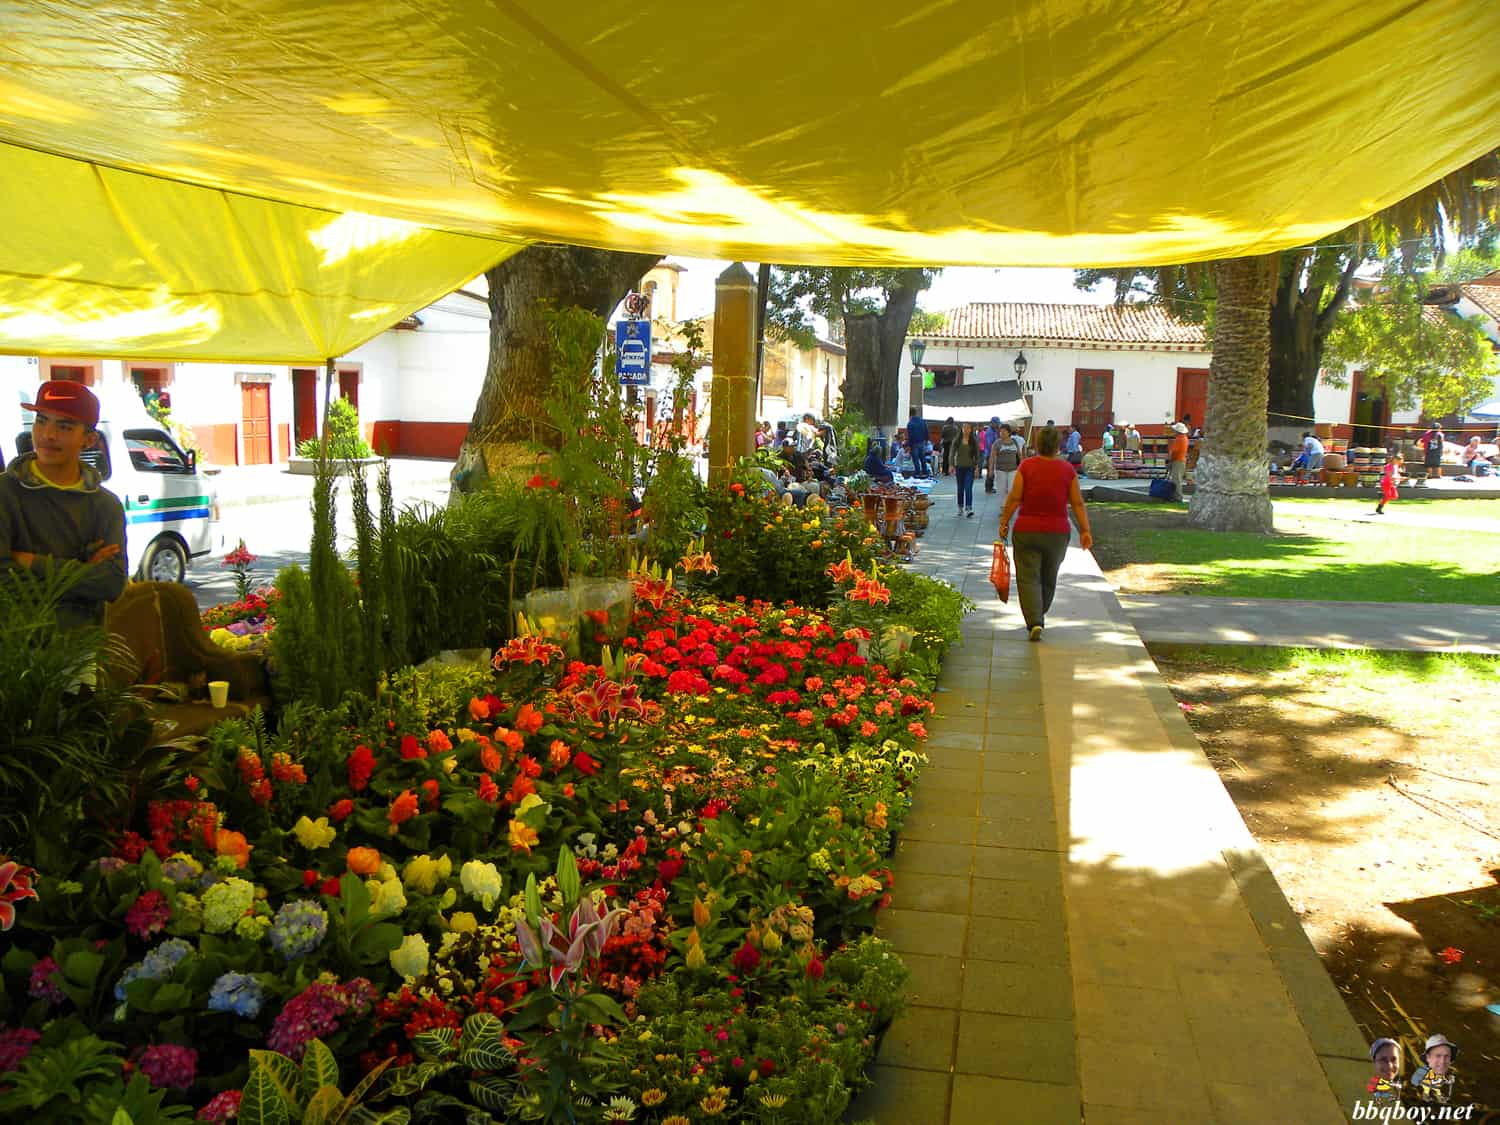 Friday market in Patzcuaro, Mexico (3)